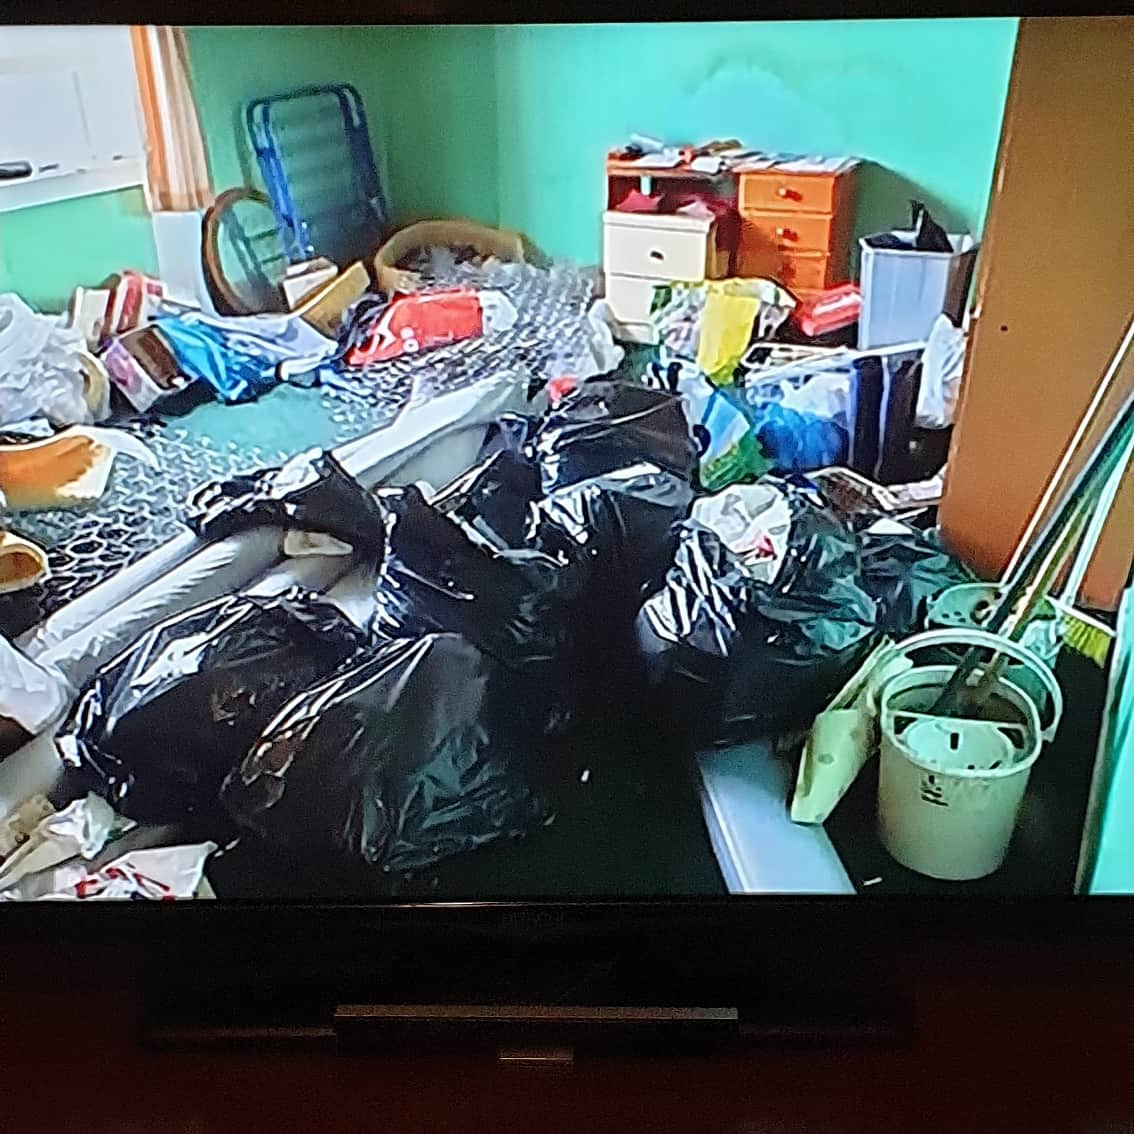 is all I can say!!! Churns my stomach watching this but these cleaners are actually amazing.  #extremecleaners #callthecleaners #dirt #grime #tummychurning #amazingwork pic.twitter.com/qGG40wXcTY